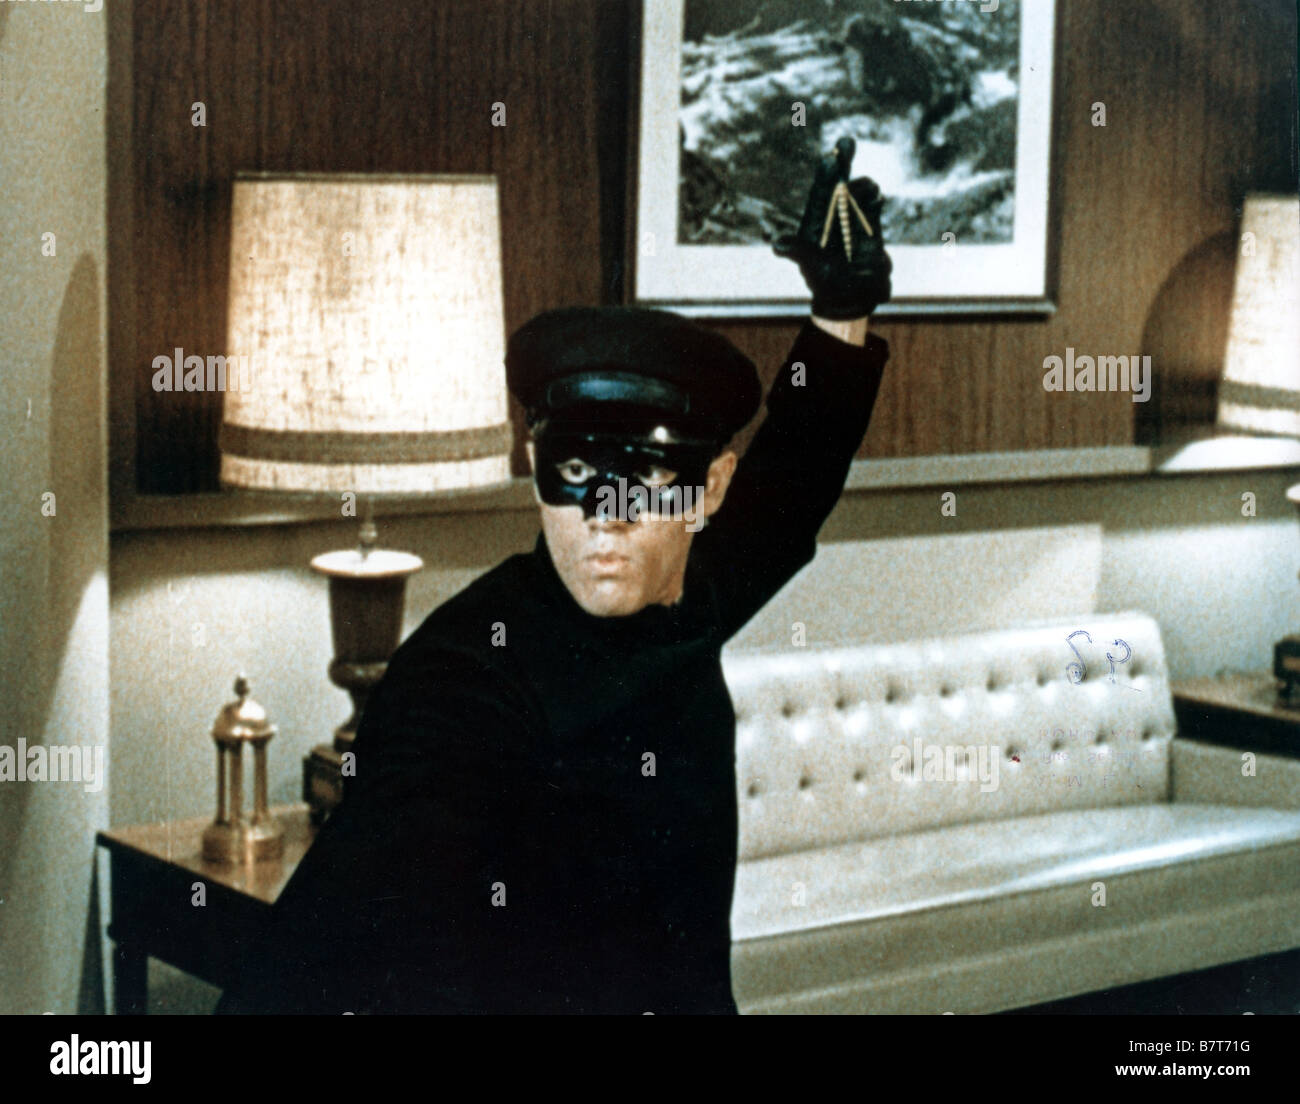 The Green hornet TV Series 1966 - 1967 USA Created by George W. Trendle Bruce Lee Stock Photo